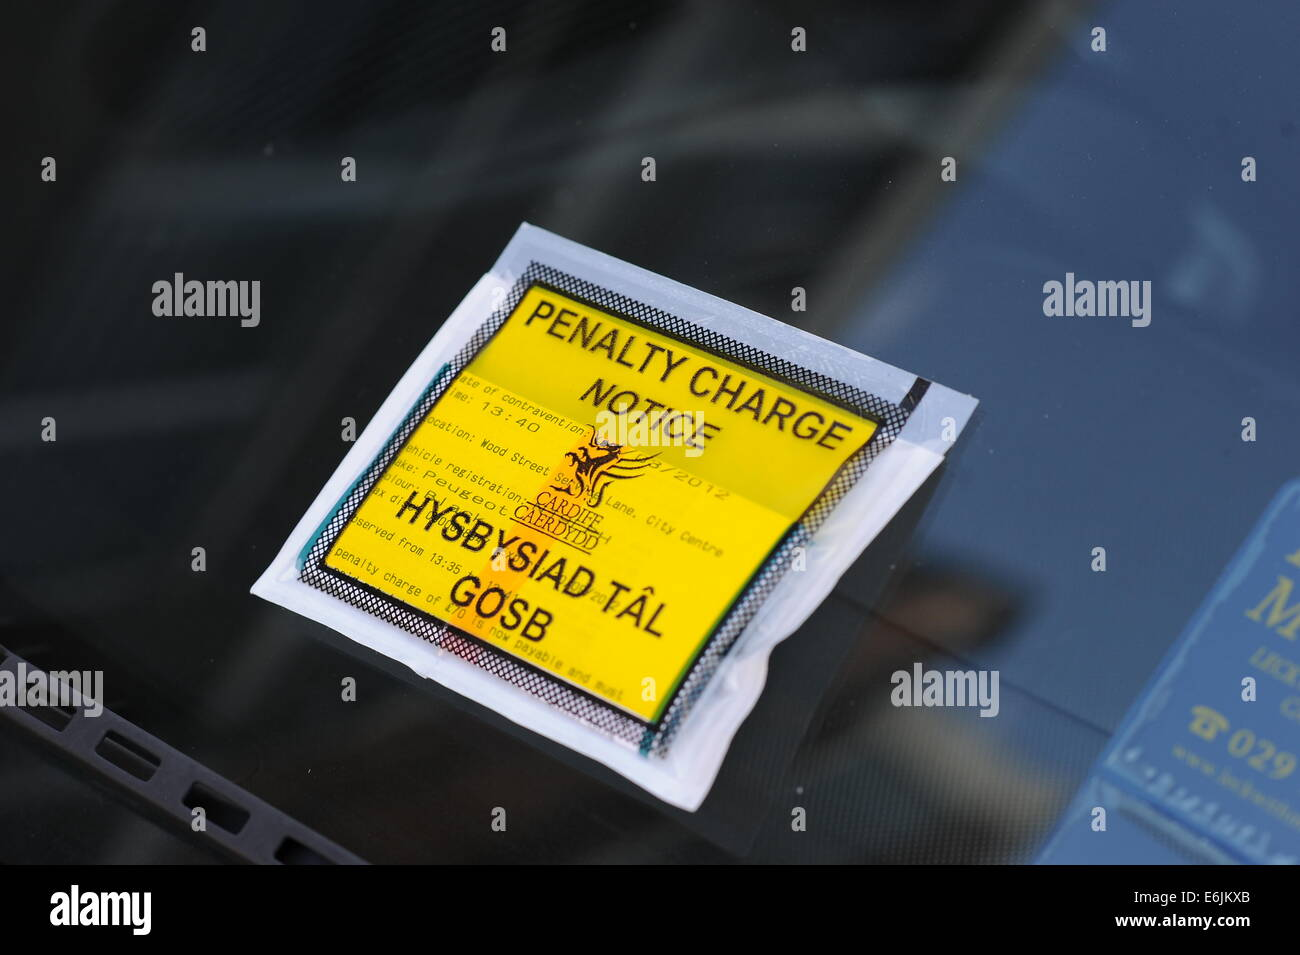 A Welsh Penalty Charge Notice (PCN) parking ticket on a car windscreen issued in Cardiff, Wales. - Stock Image